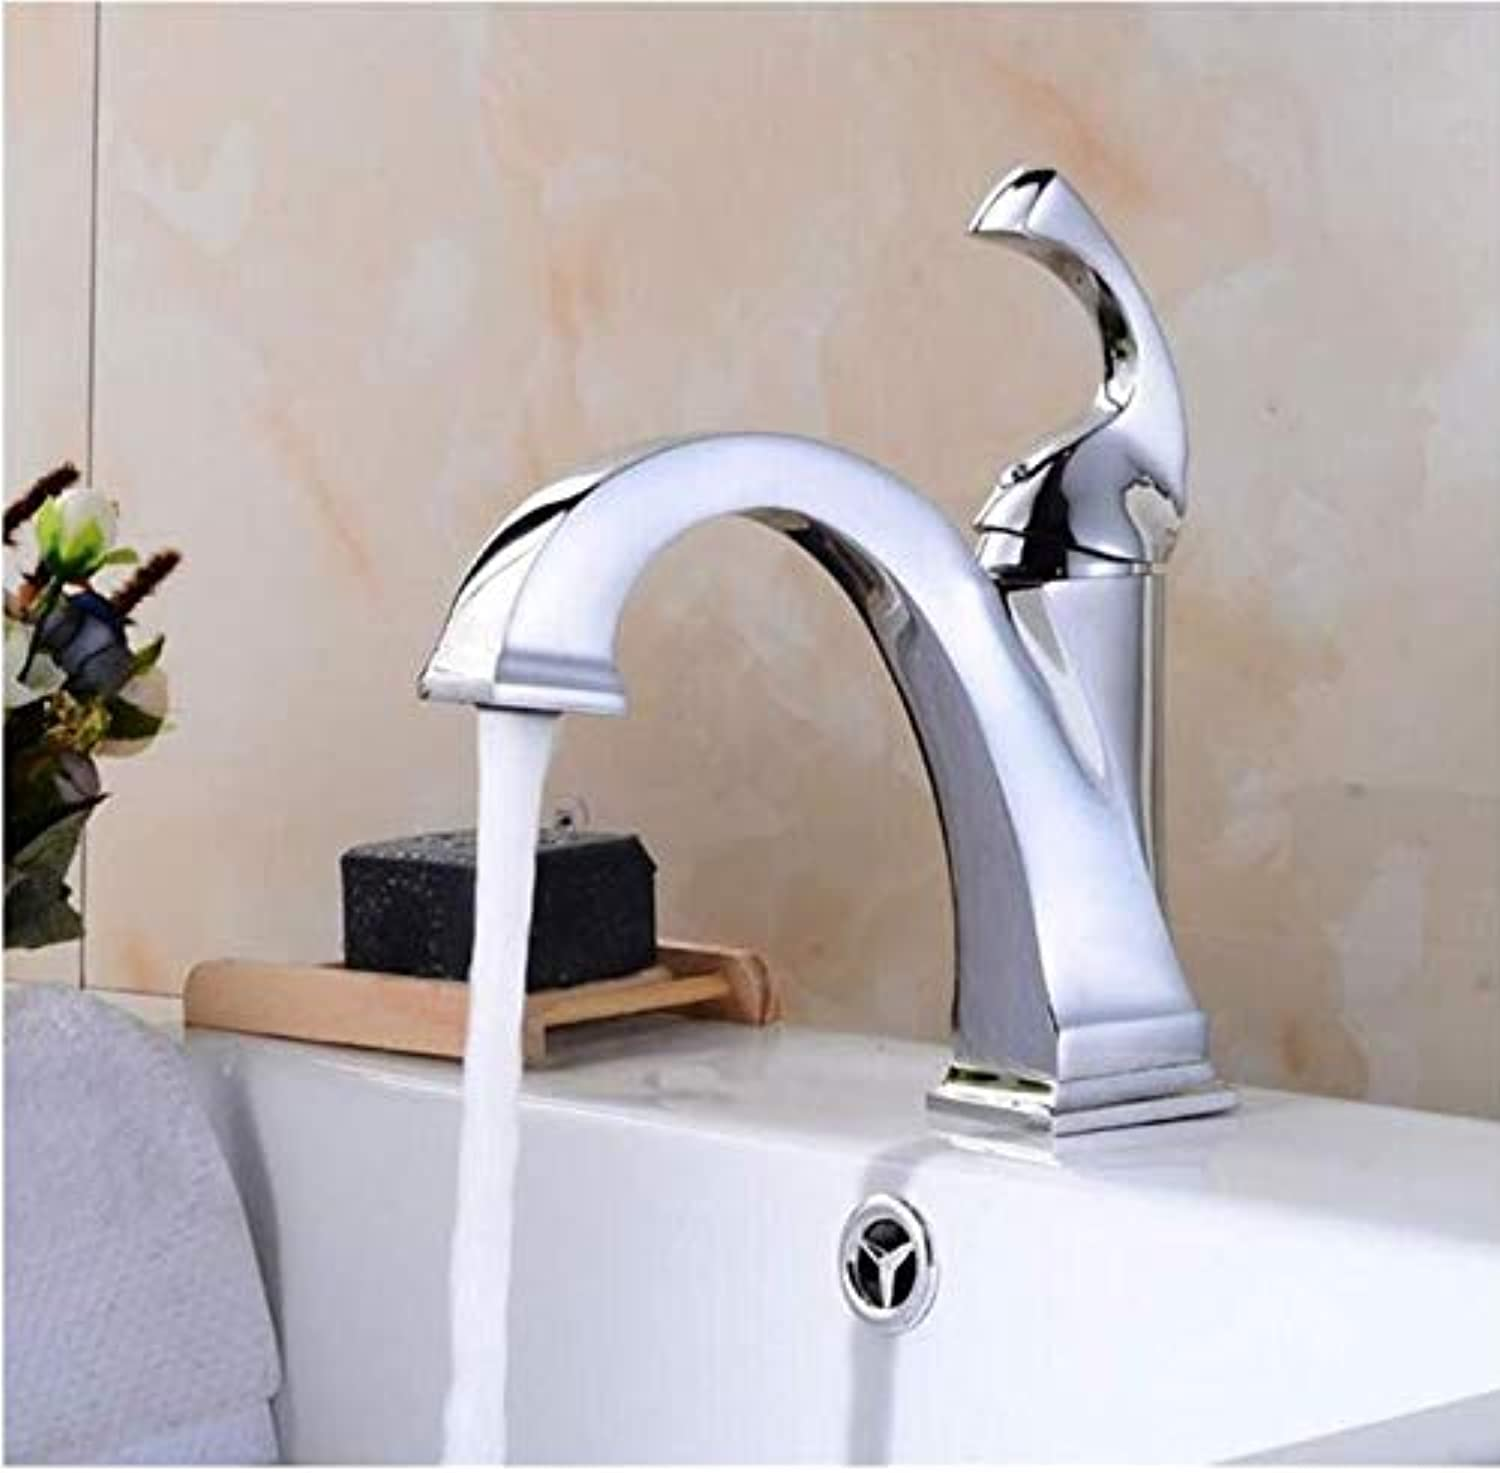 High Quality Kitchen Brass Stainless Steelchrome Finish Torneria Brass Mixer Tap Deck Mounted Single Handle Hot and Cold Water Faucets